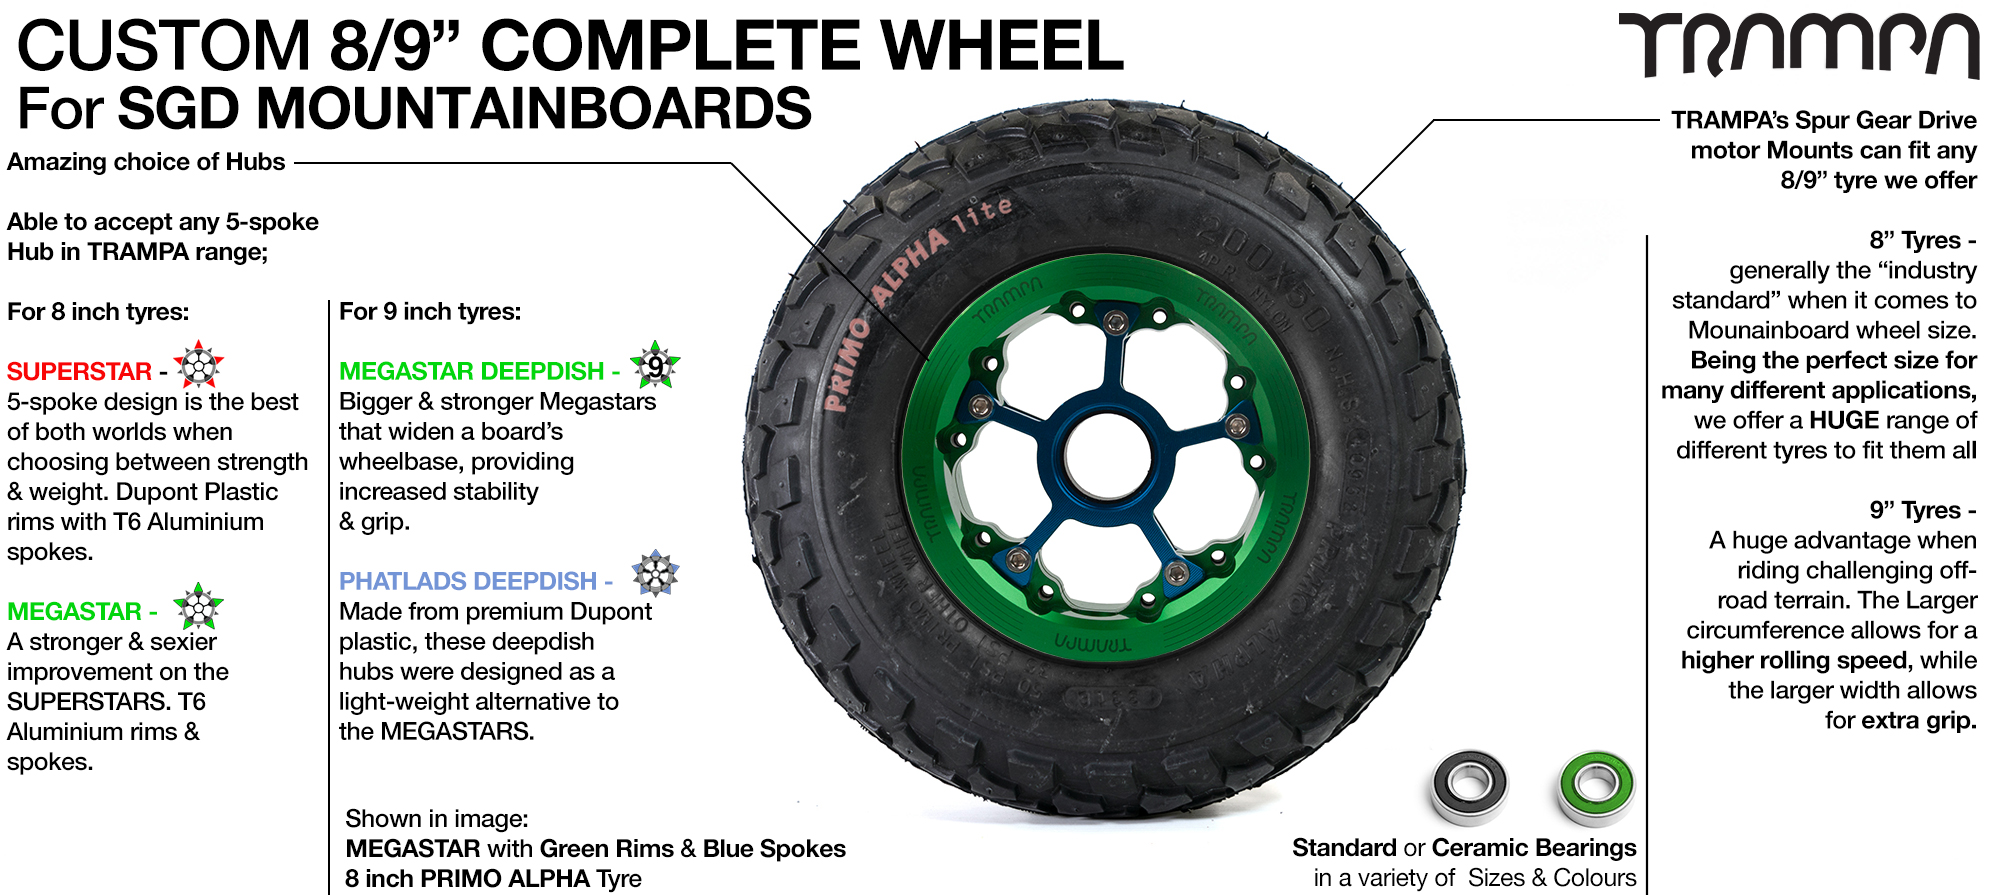 Build your own Custom TRAMPA Wheel - SUPERSTAR, 8 Inch MEGASTAR, 9 Inch PRIMO or 9 INCH DEEP DISH MEGASTAR Wheels! Awesome selection for on & off road! Amazing!!